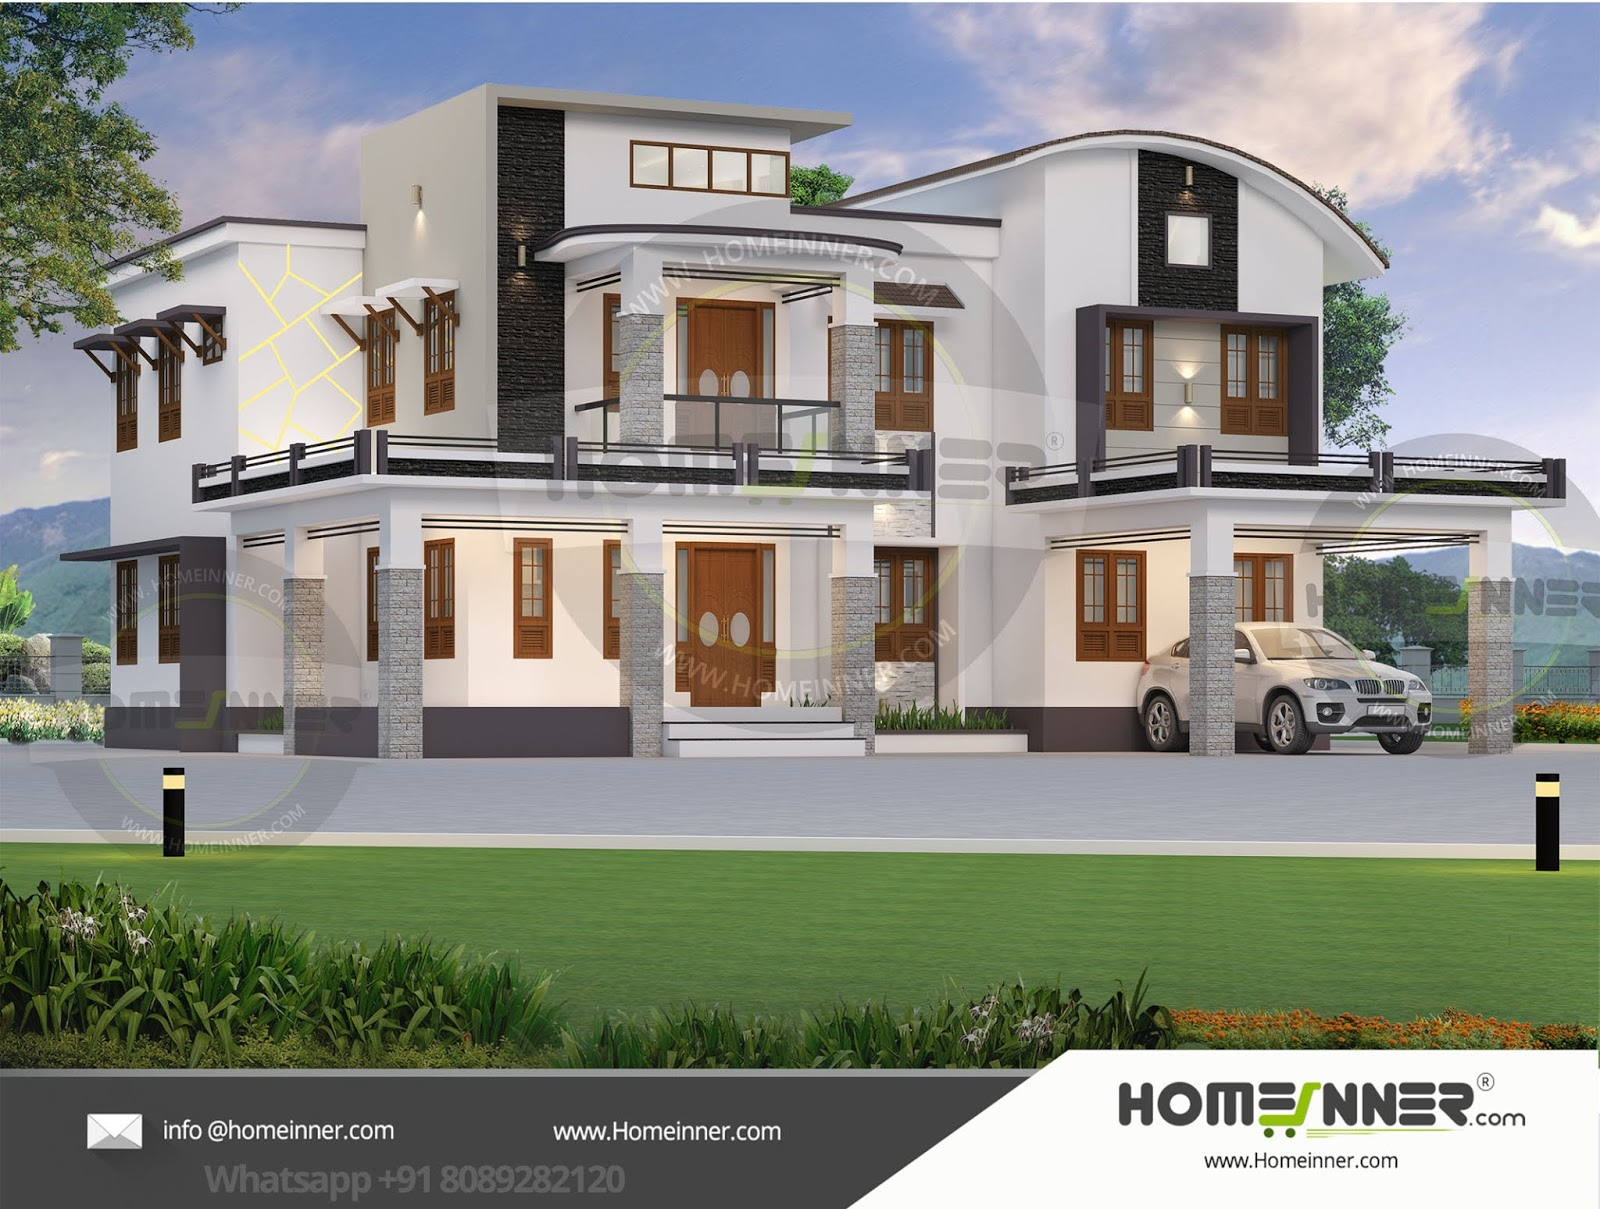 43 Lakh 4 BHK 3077 sq ft Bhatpara Villa